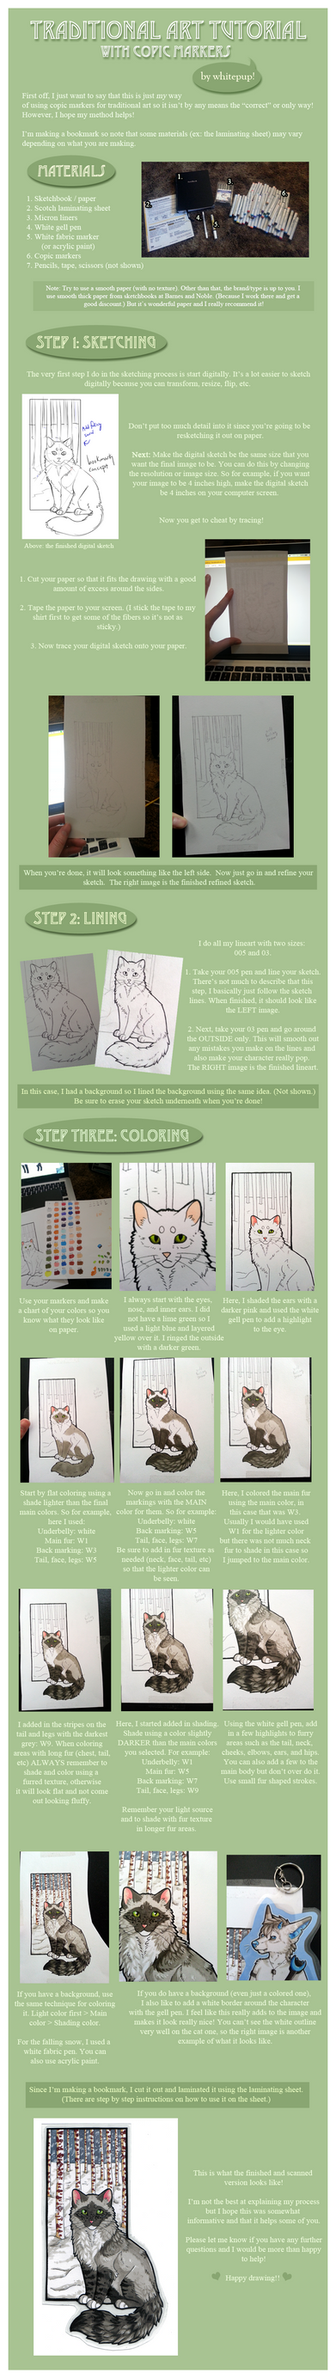 Traditional Art Tutorial - With Markers by lilyote